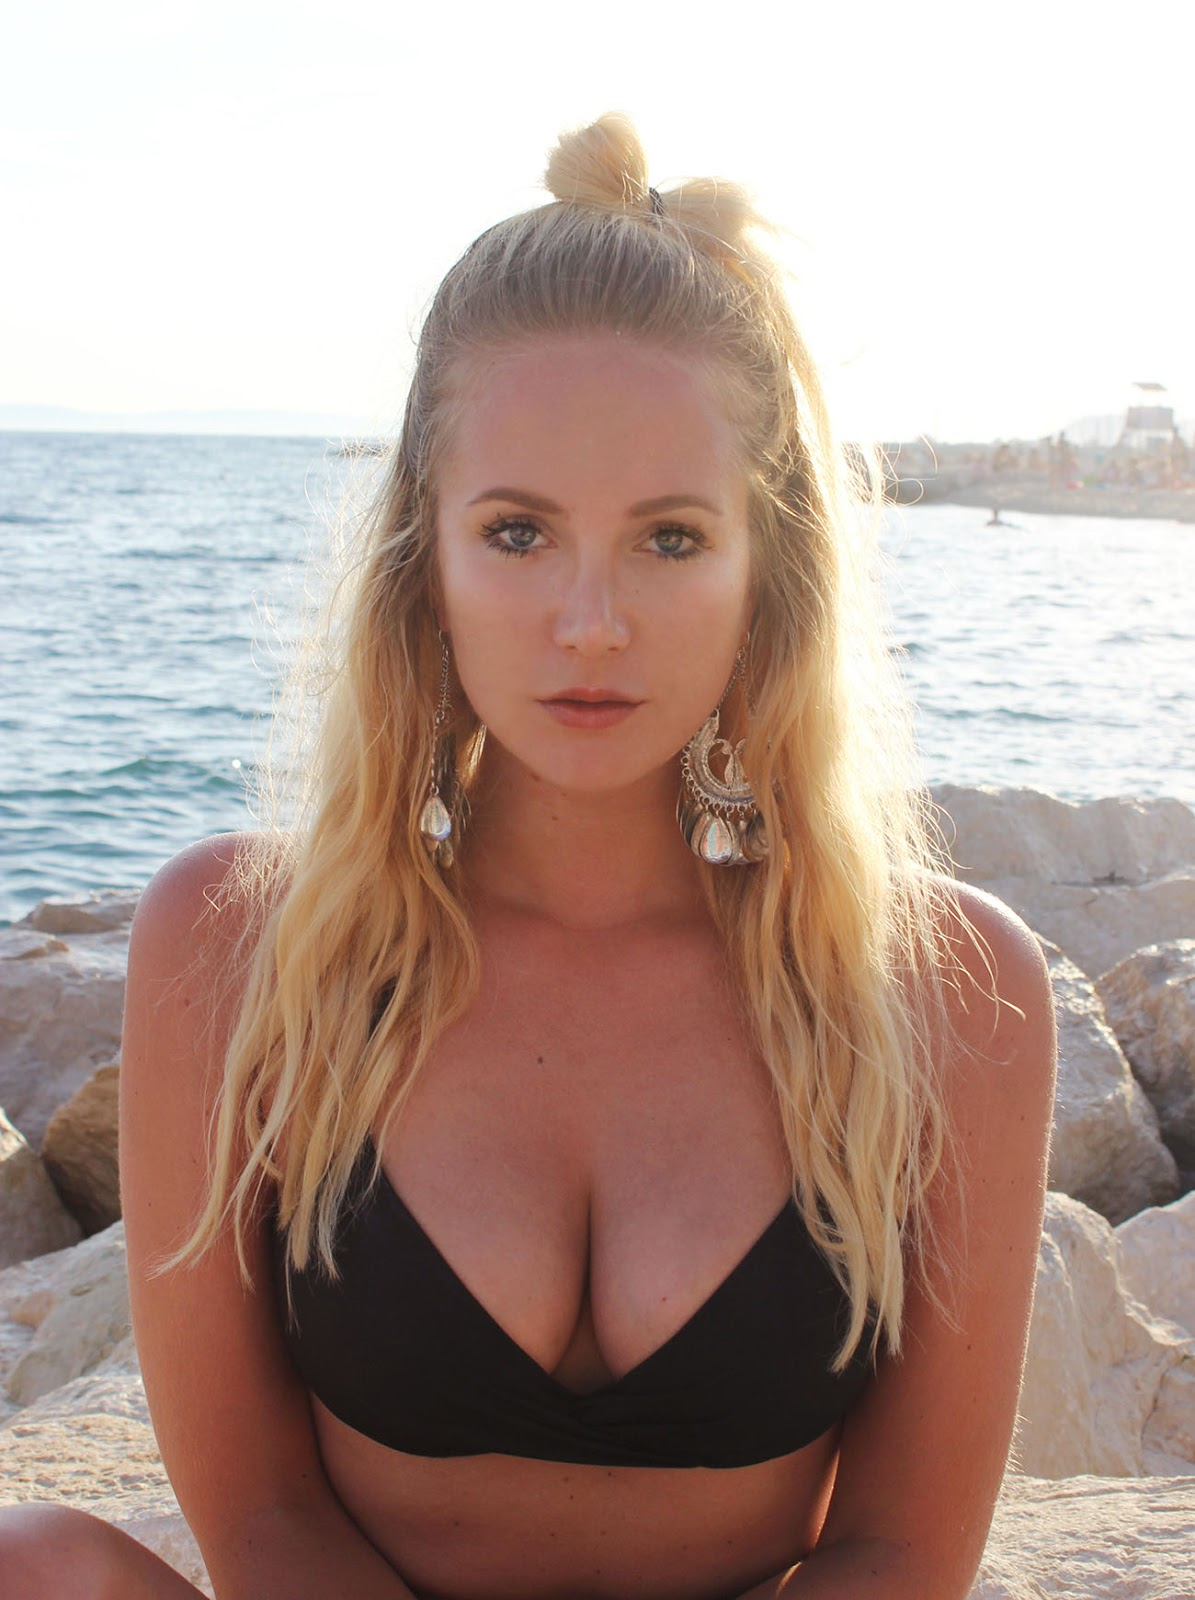 Model Travelblogger with blonde hair Shooting at the beach of split, croatia